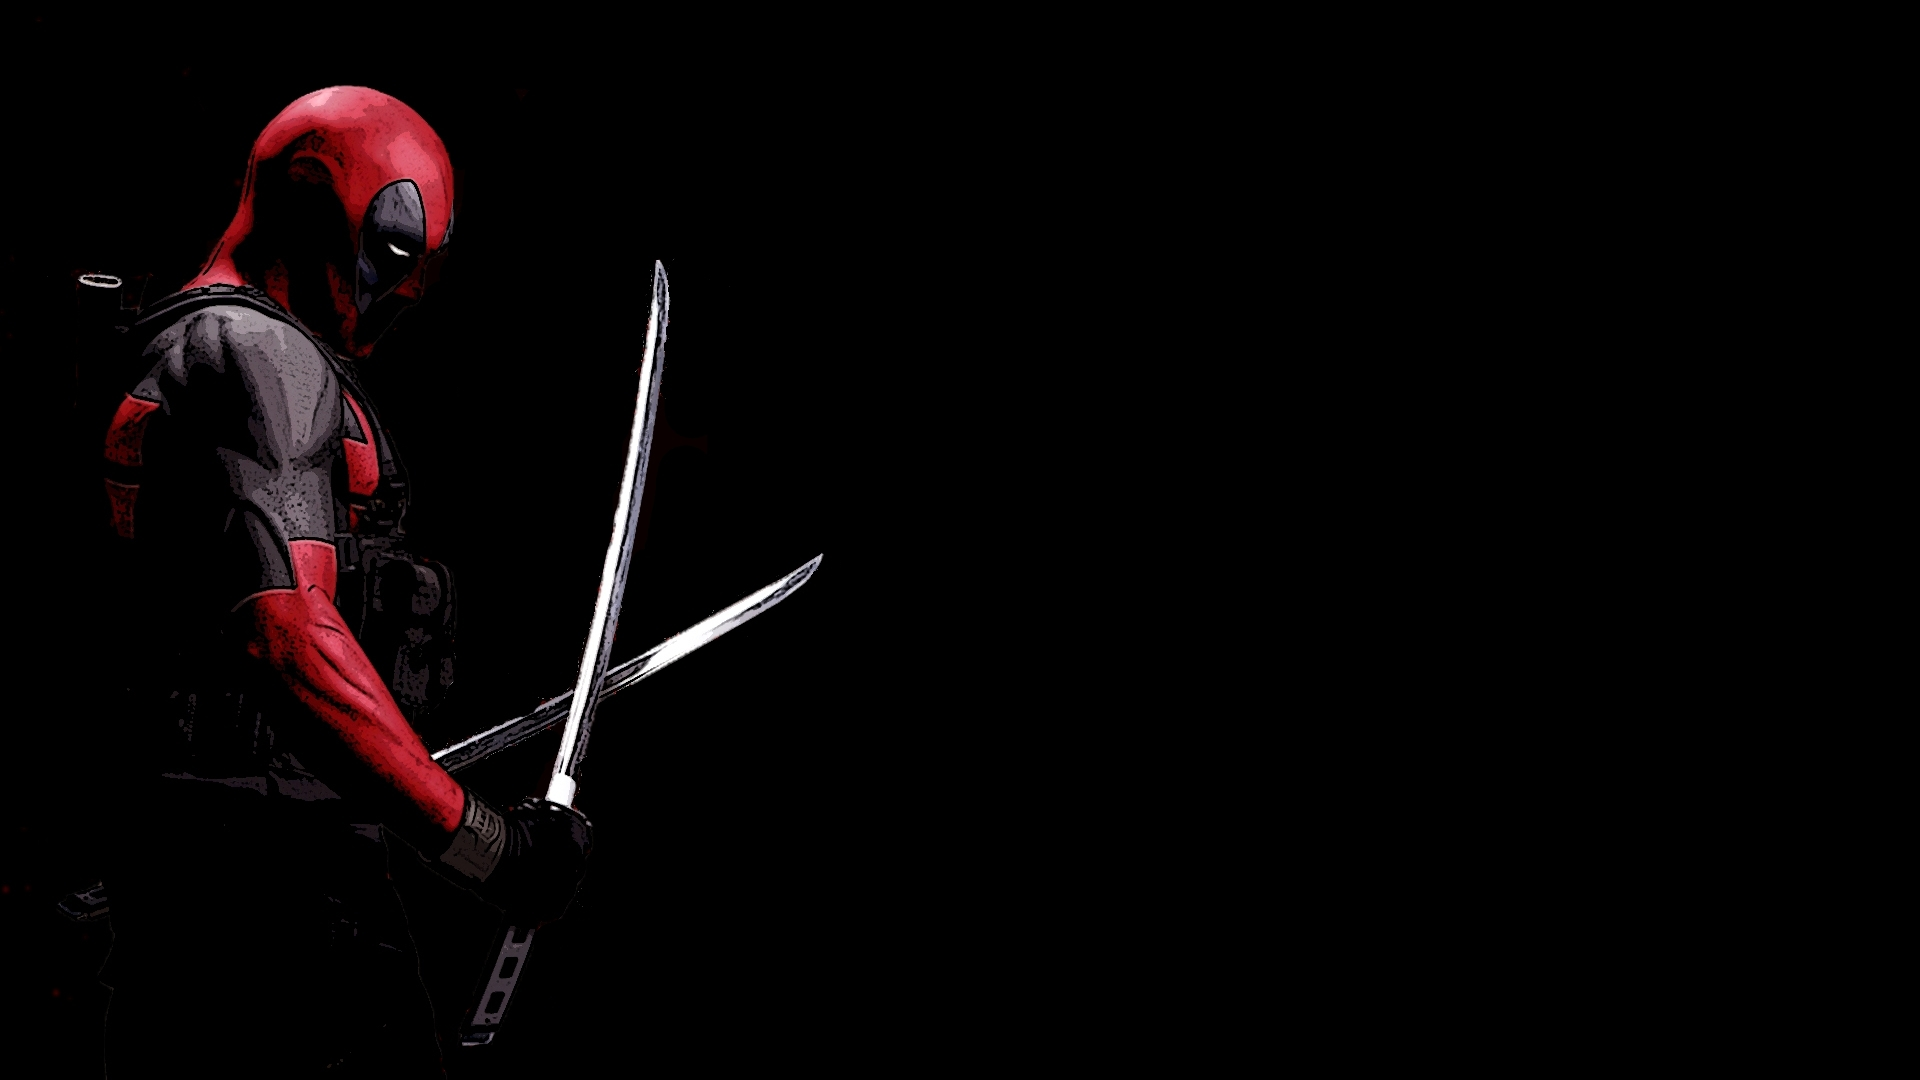 Deadpool wallpapers best wallpapers for Deadpool wallpaper 1920x1080